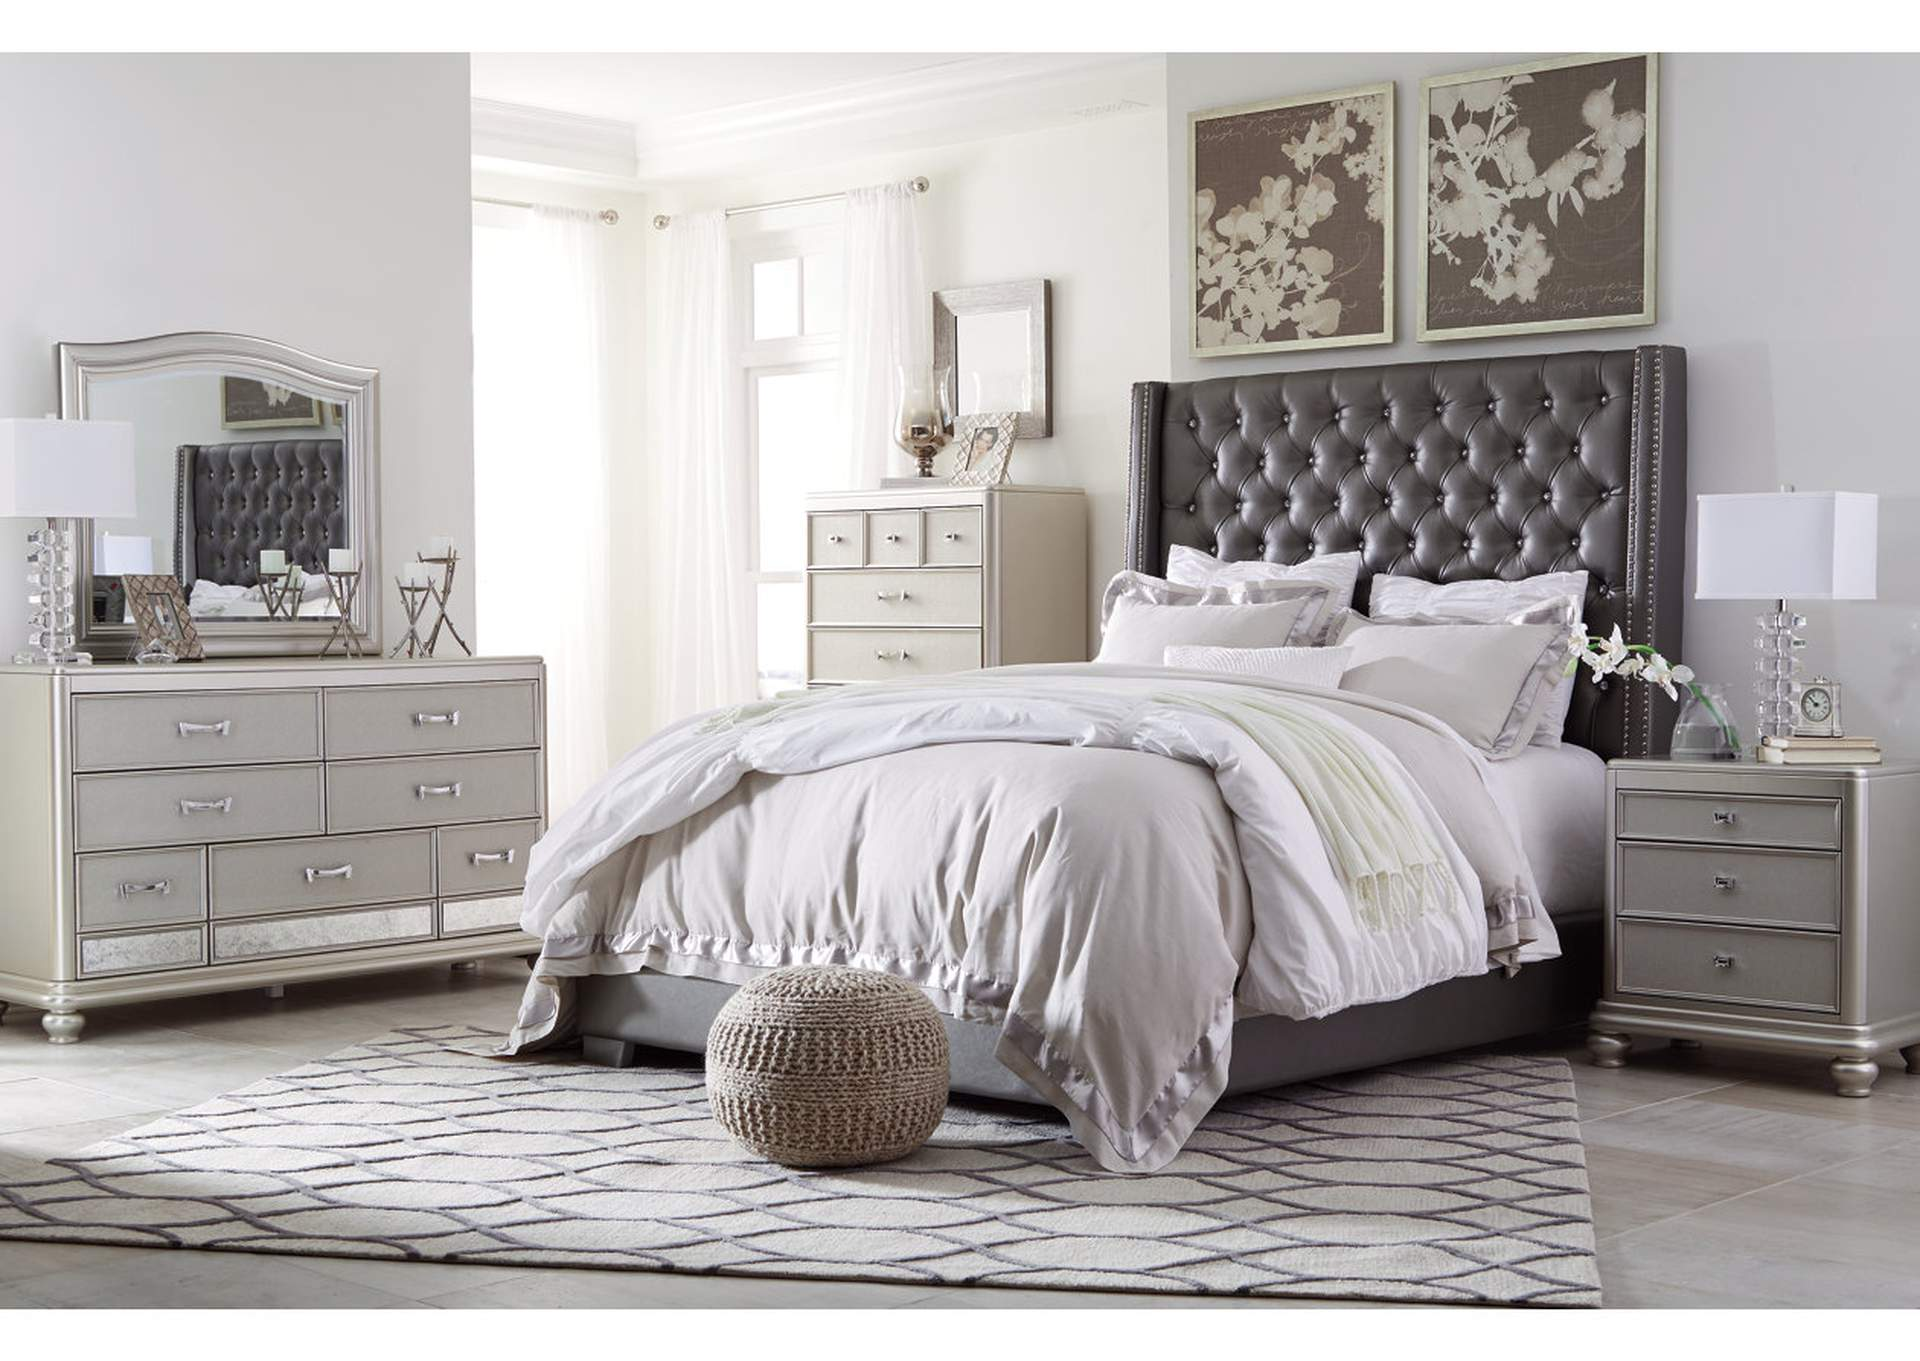 Coralayne Gray Queen Upholstered Bed w/Dresser & Mirror,Signature Design By Ashley